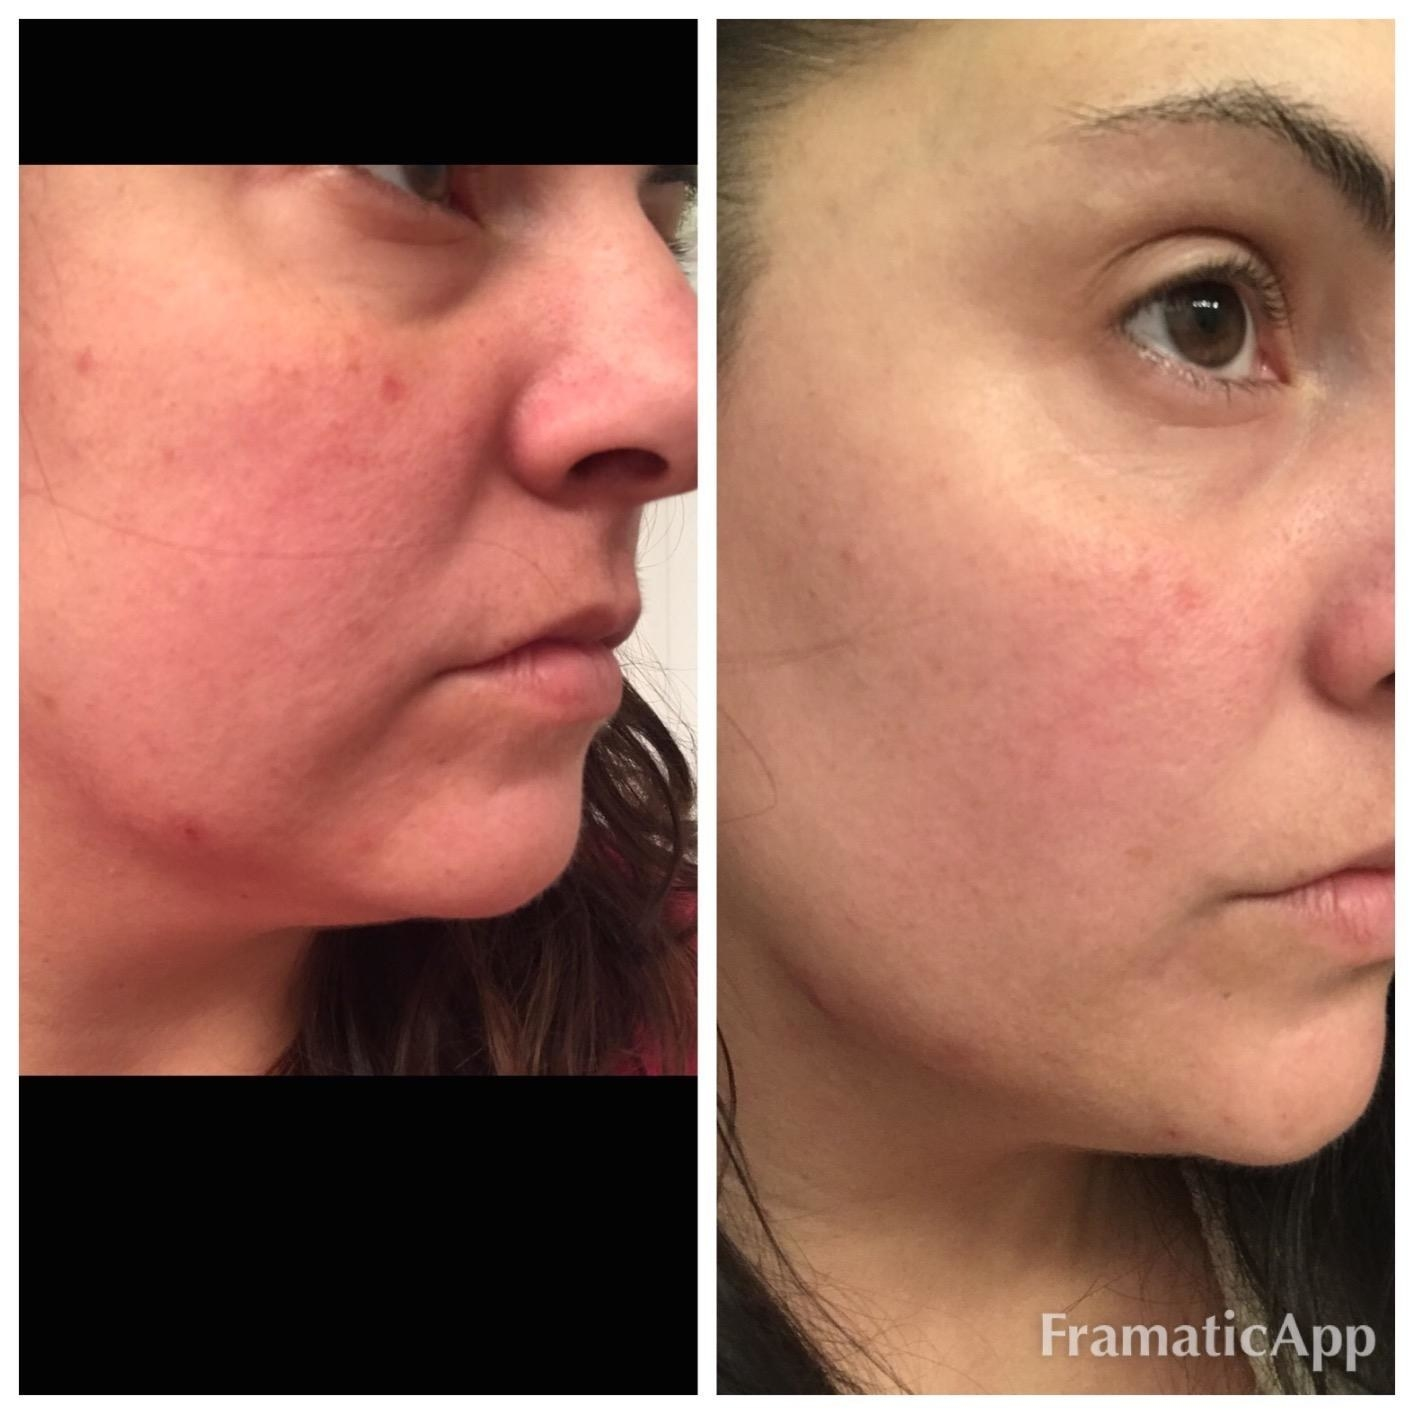 before and after of a reviewer with flushed uneven skin, then clear, more toned, less red skin after use of product